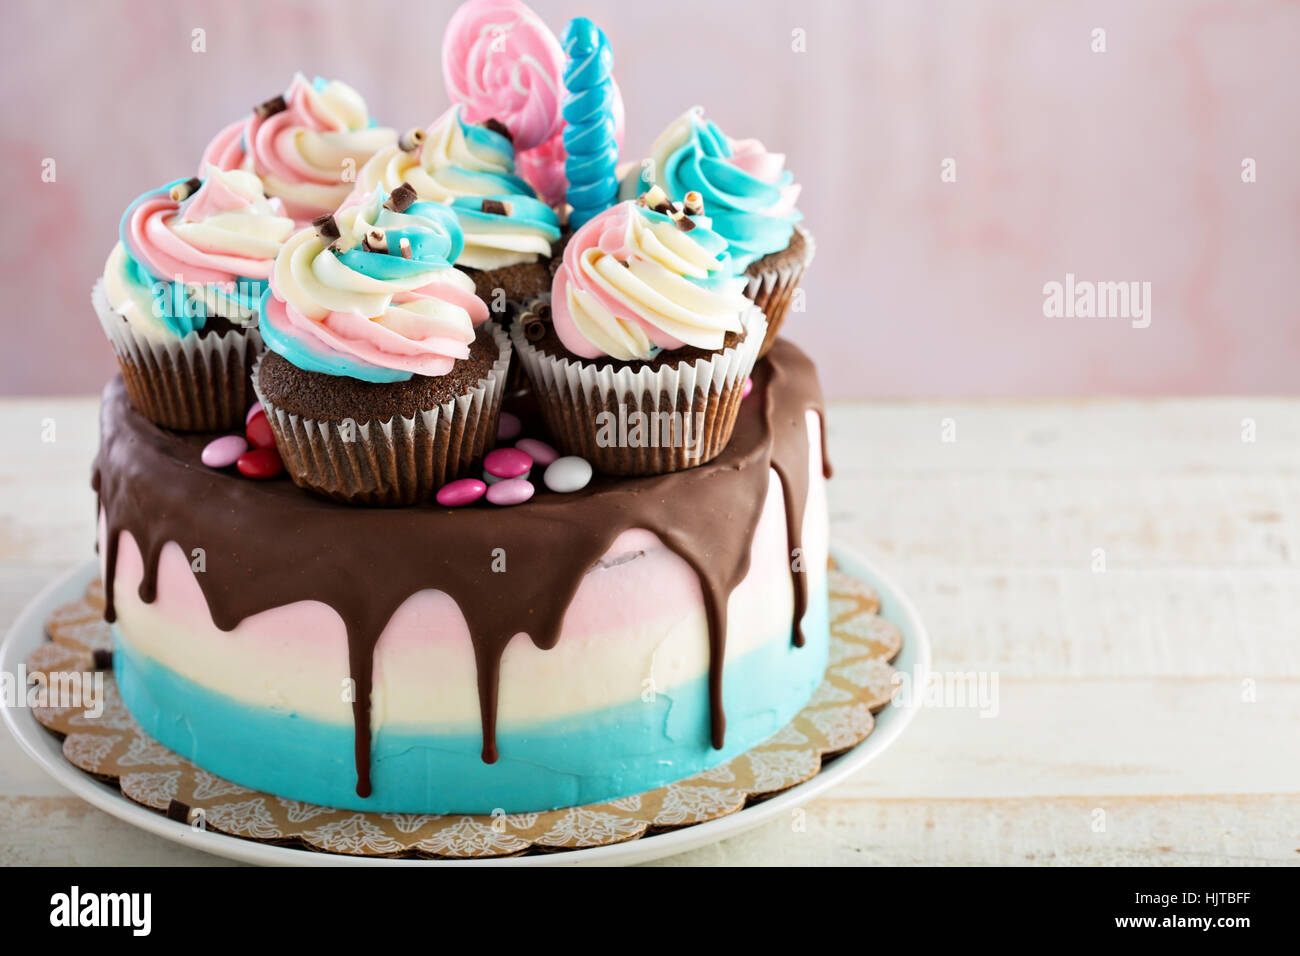 Pink and blue festive cake - Stock Image